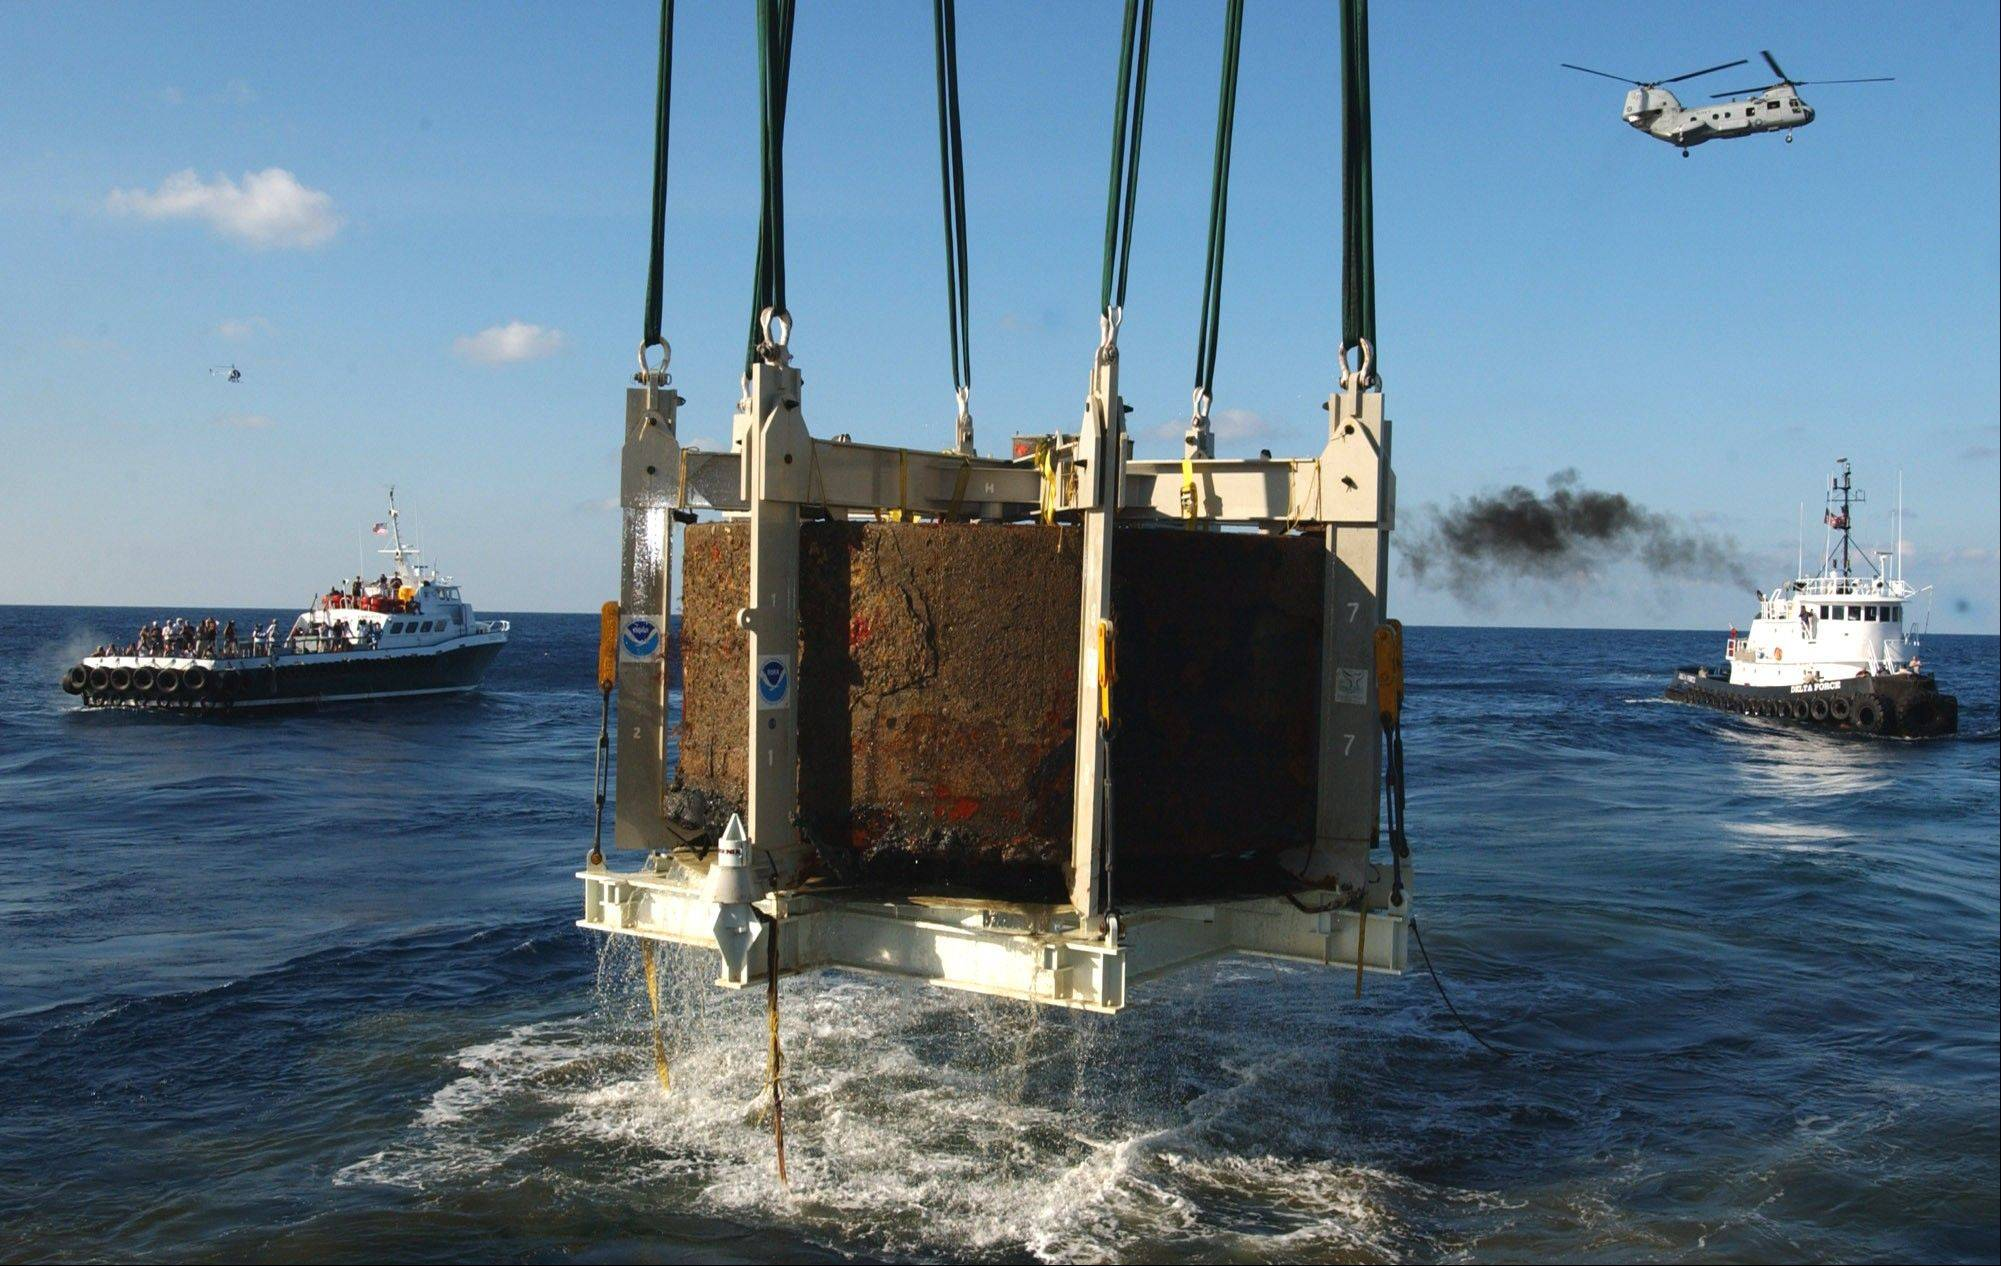 The turret of the Civil War ironclad USS Monitor is lifted out of the ocean off the coast of Hatteras N.C.